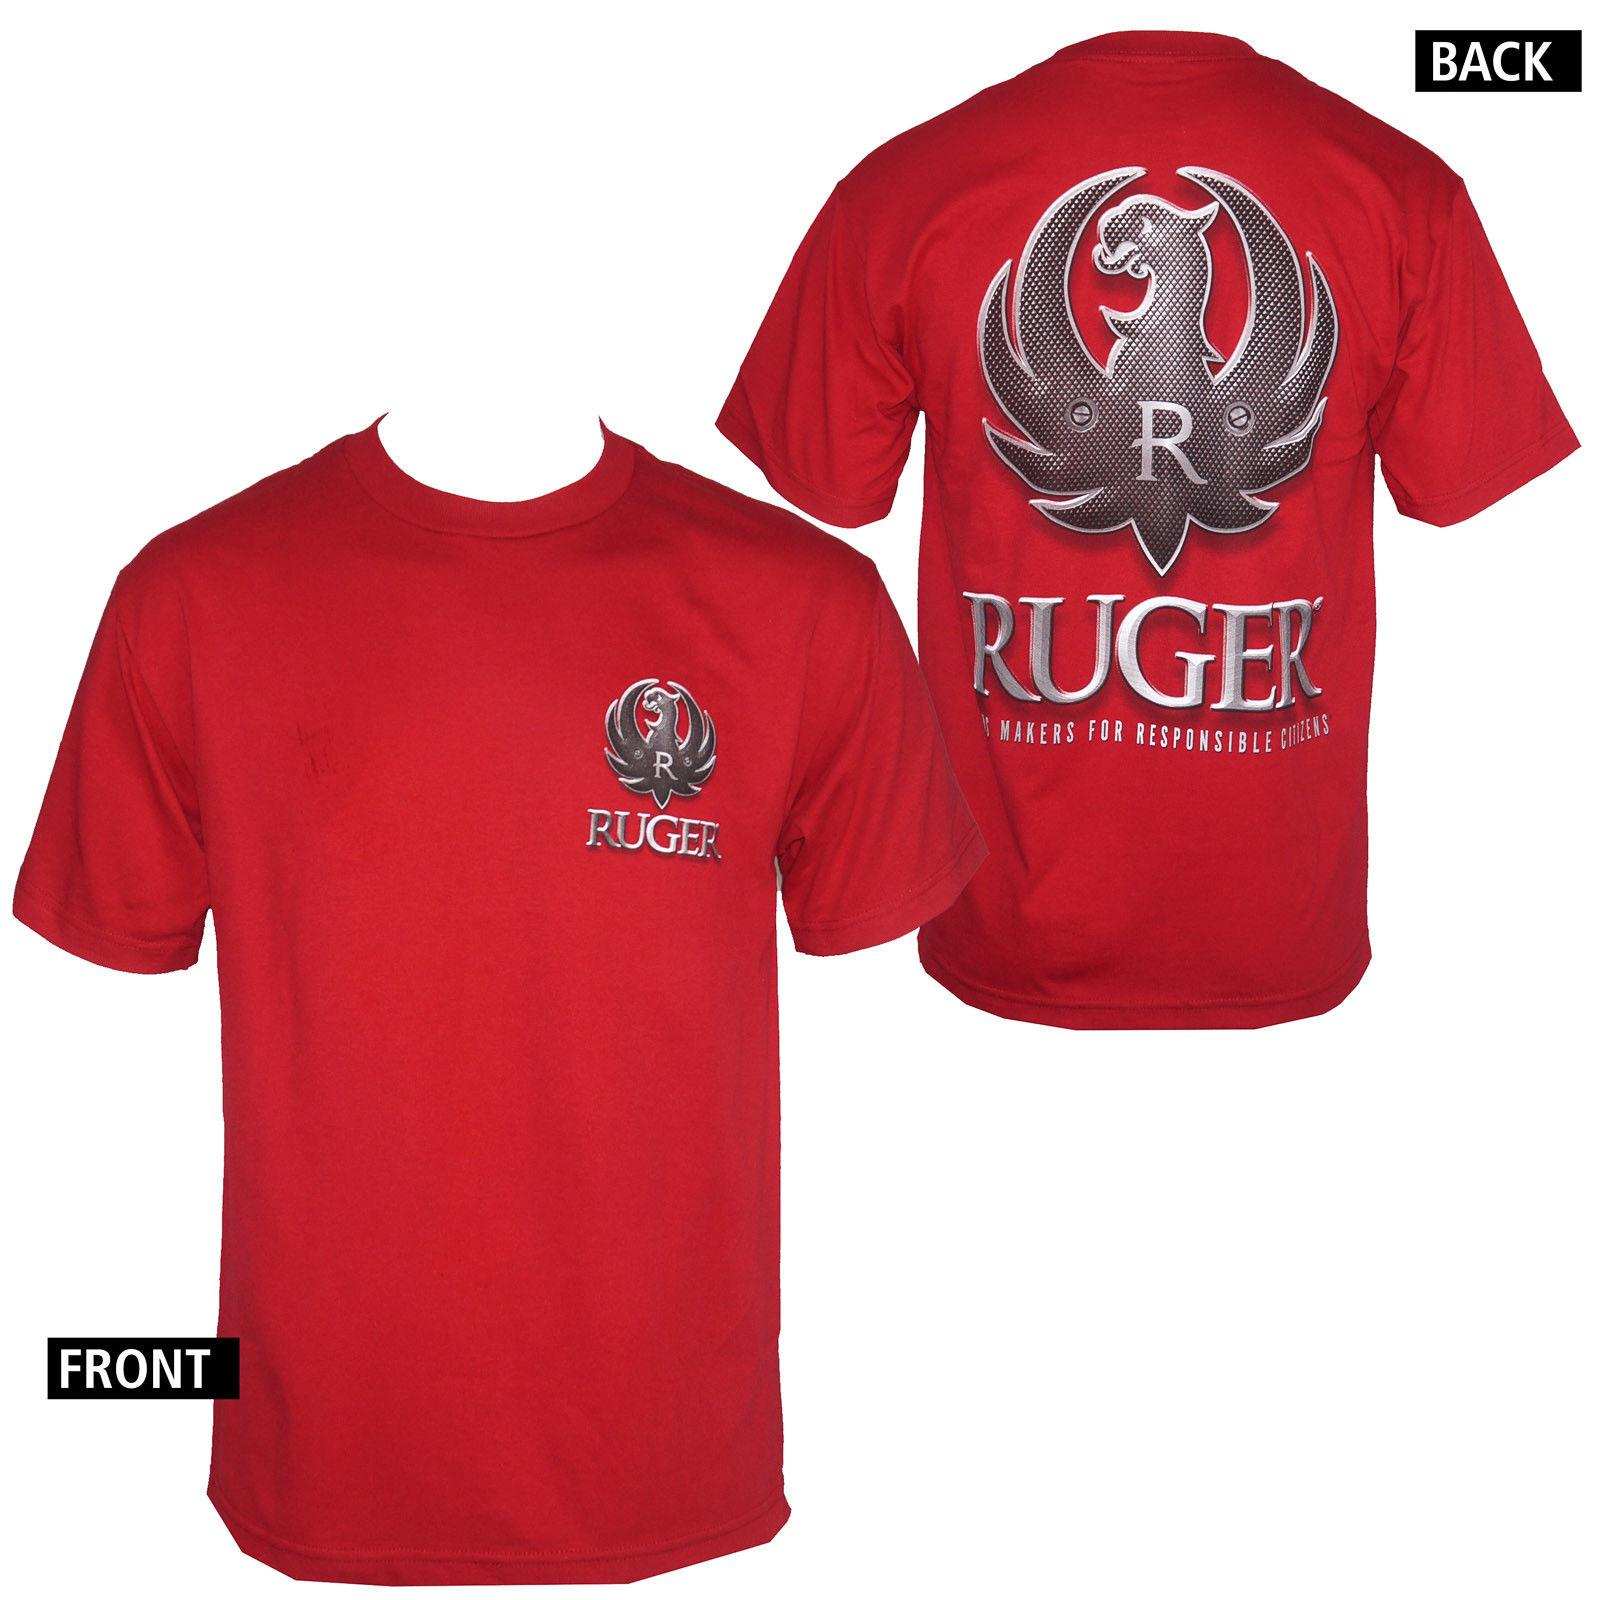 281c166b1 Licensed Ruger RGR Tactical Logo Arms Men S Cardinal T Shirt S 3XL NEW  Funny Gift Short